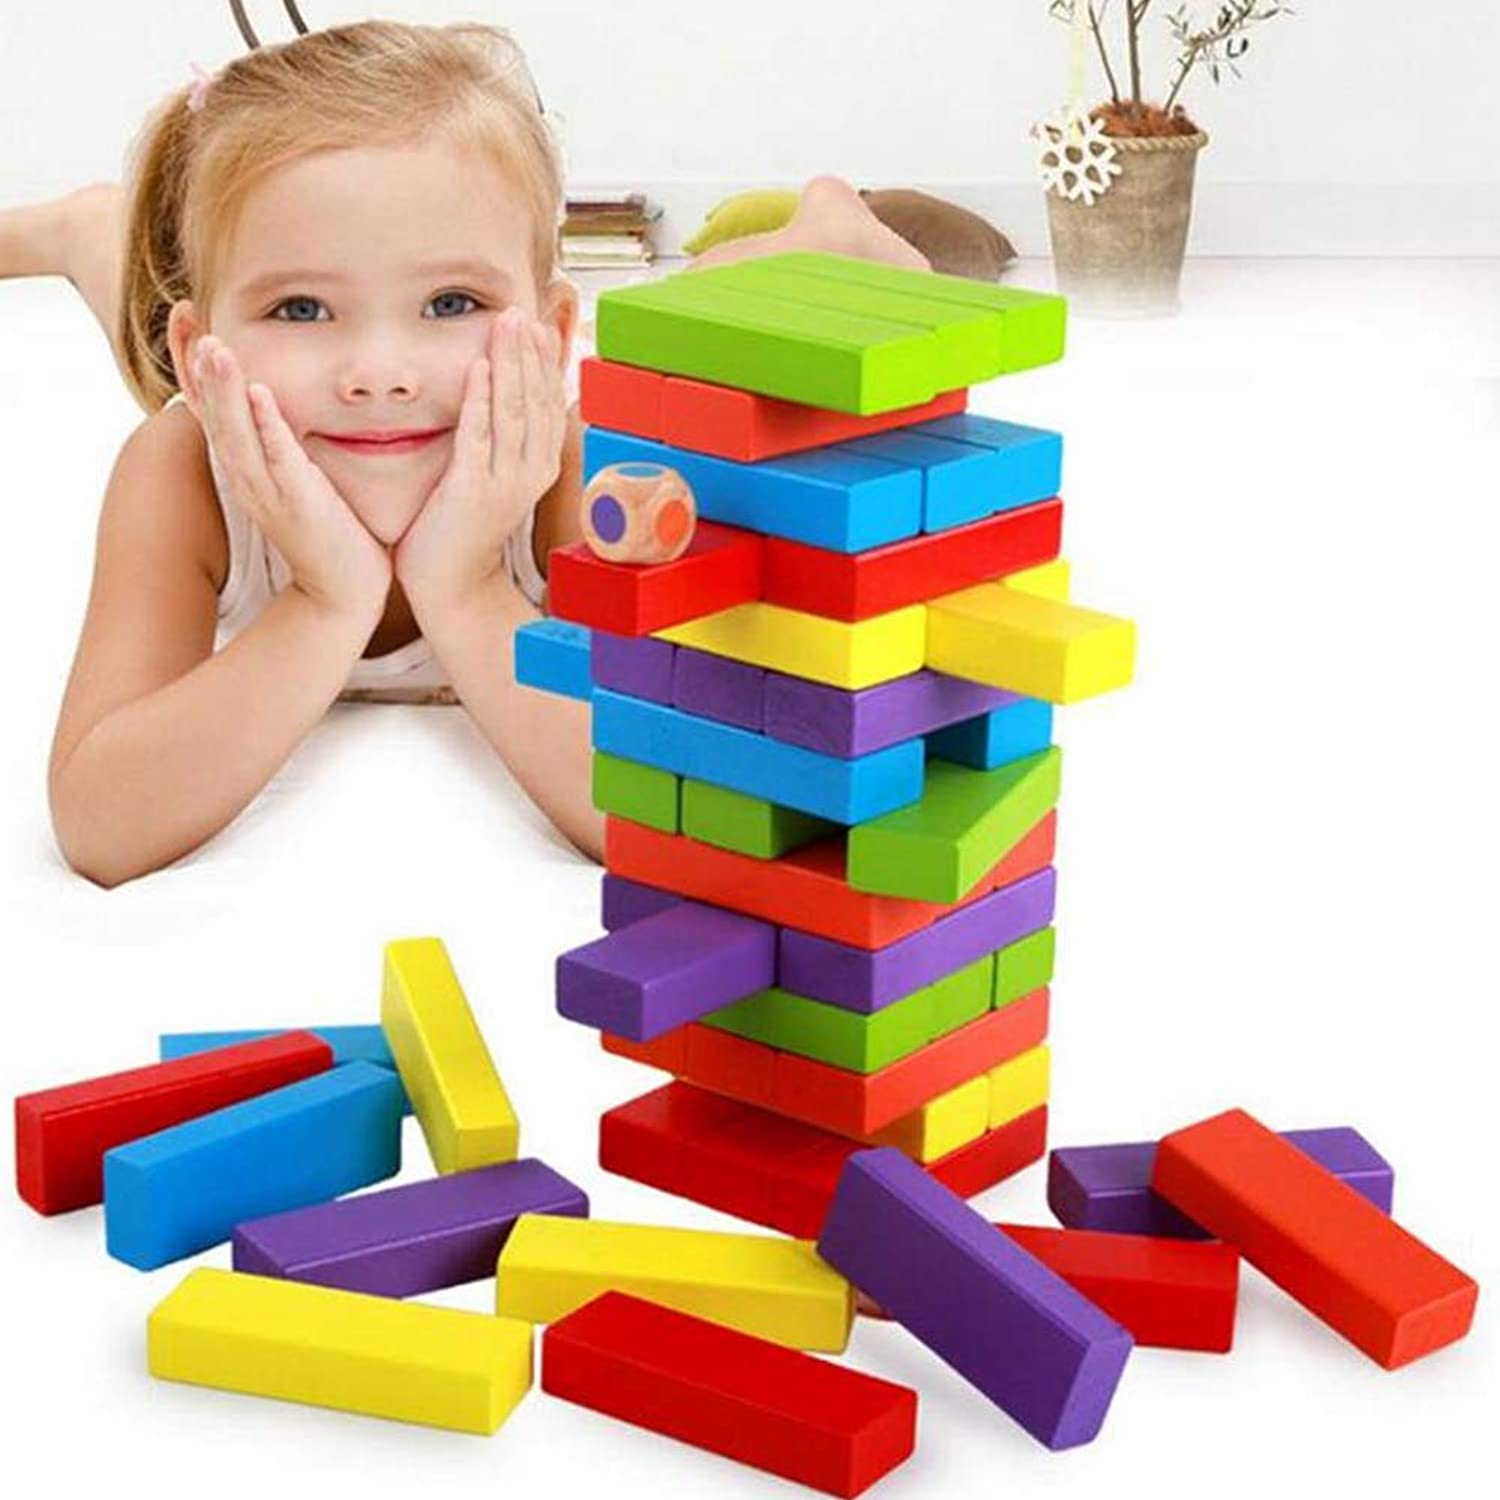 51pcs colorful Wooden Building Blocks Stacking Height, Kids Game Educational Play Toy,